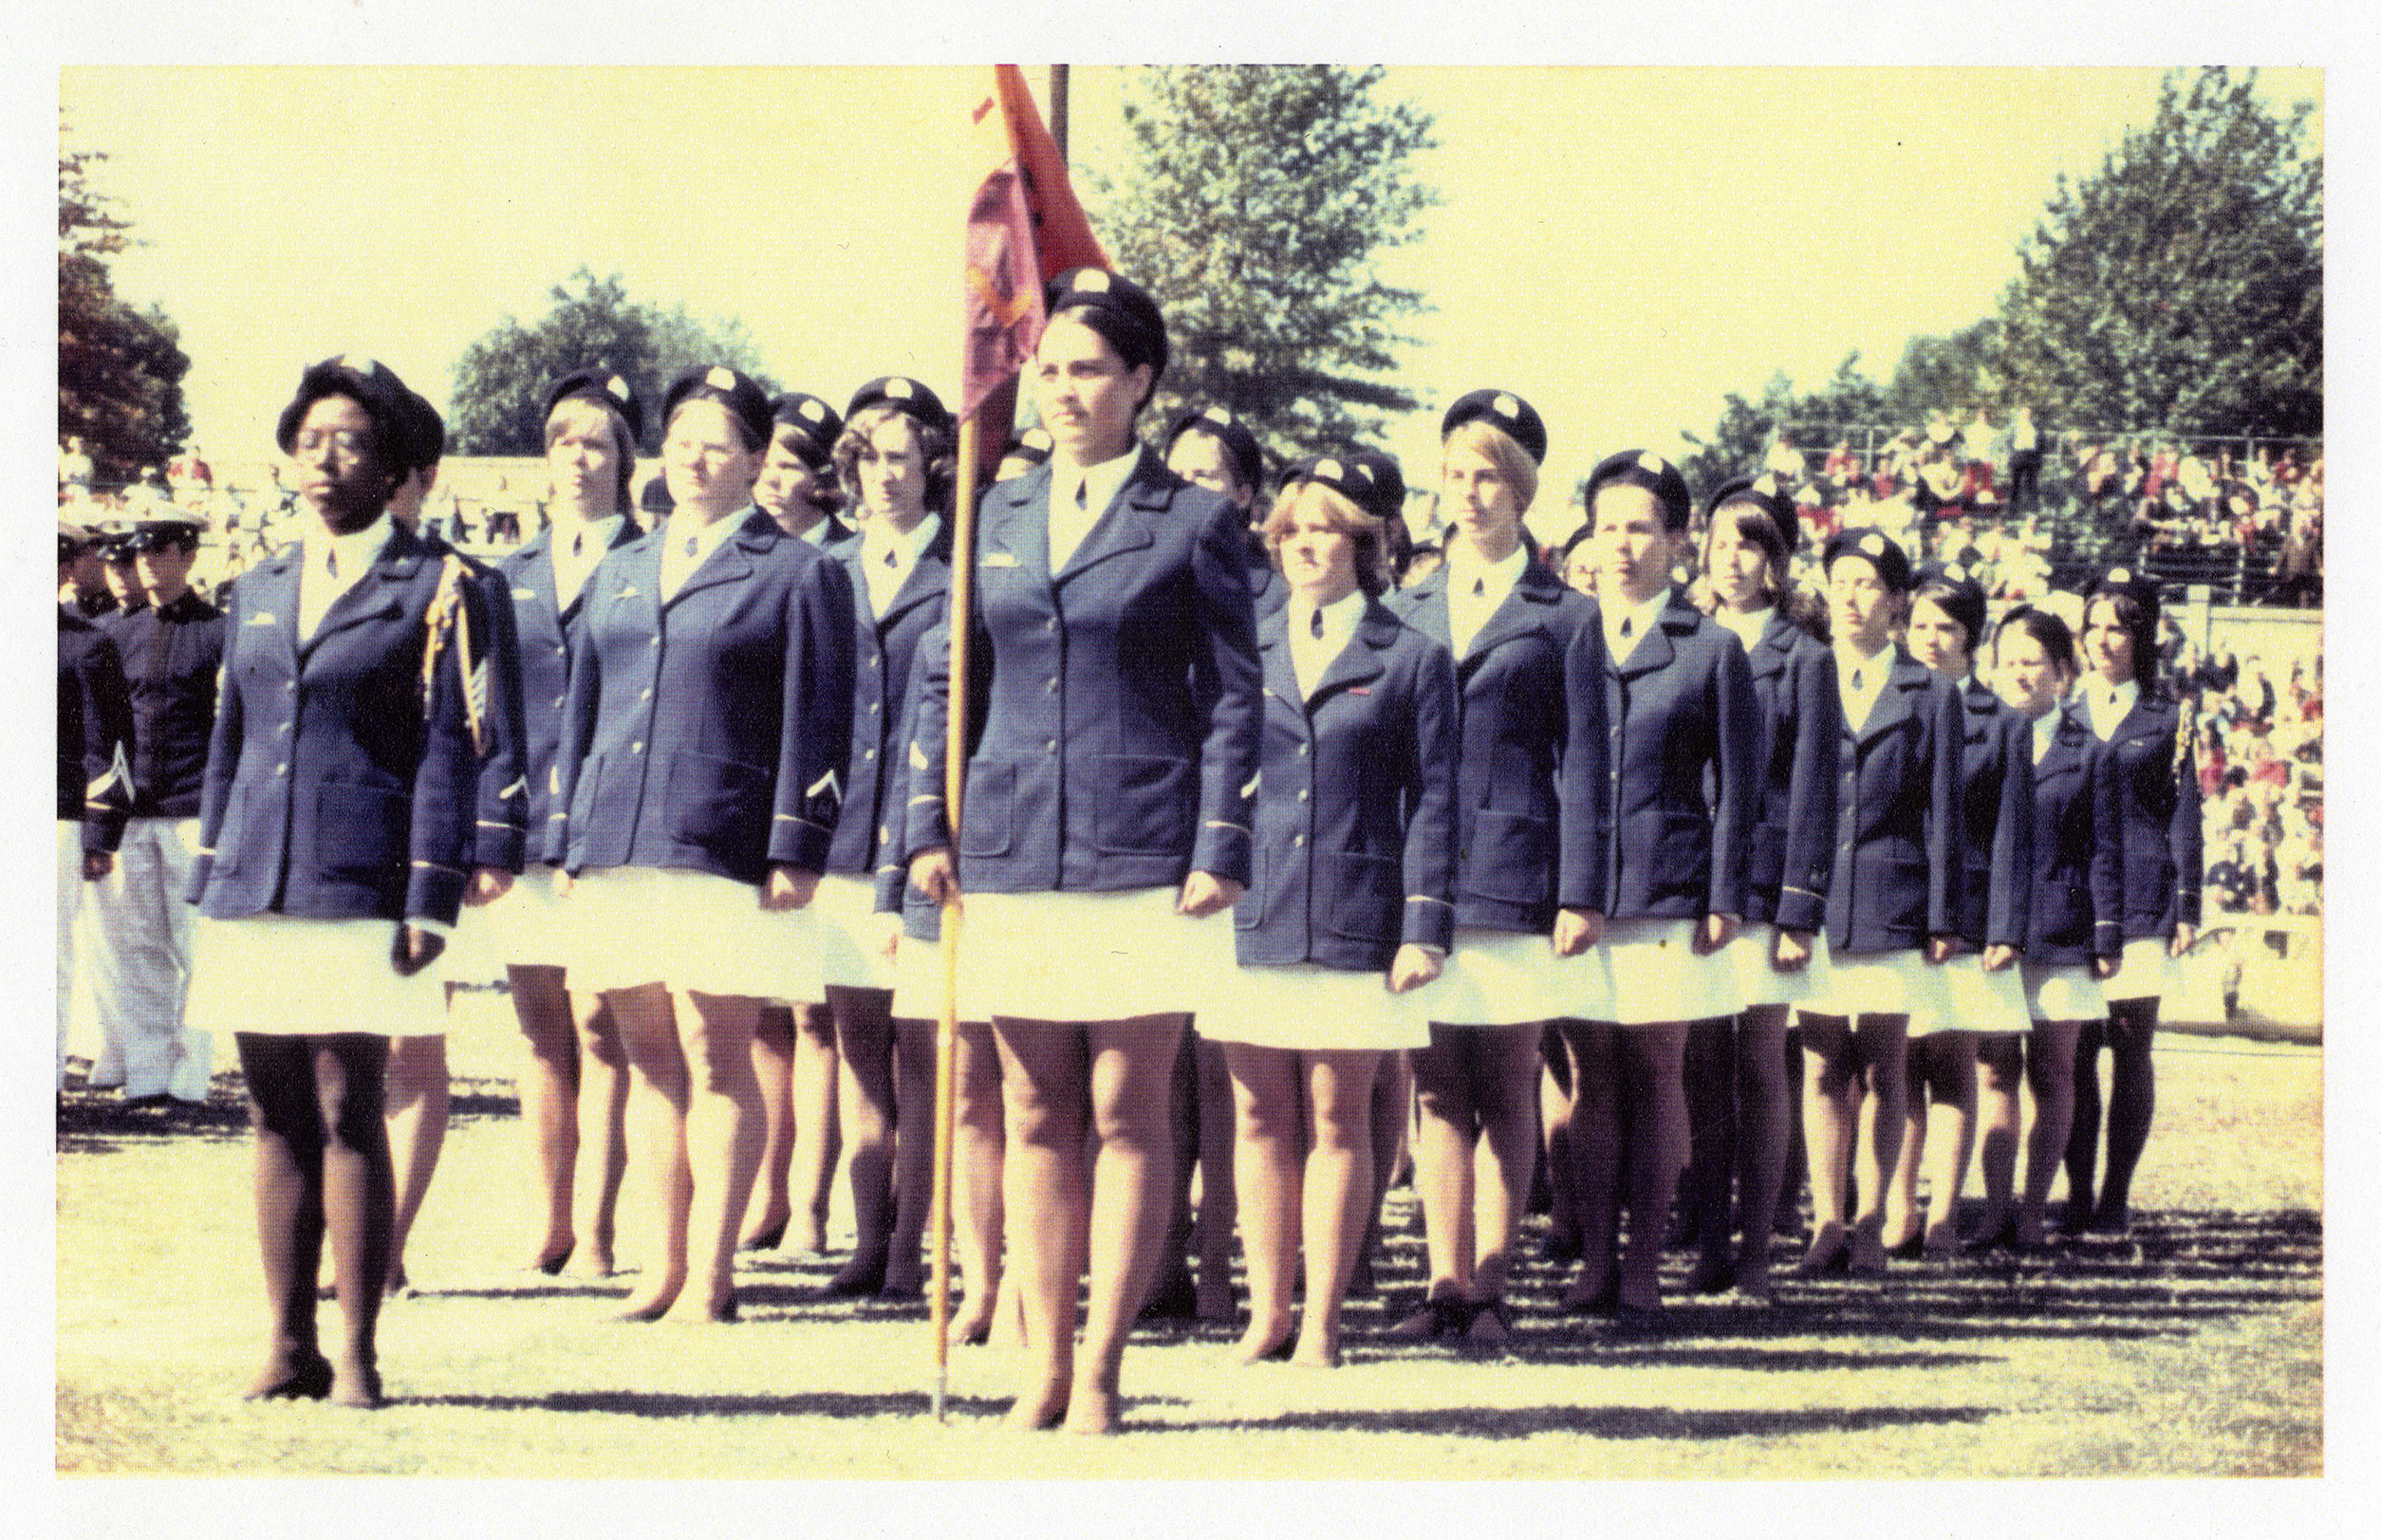 Uniformed women of L Squadron standing at attention in formation, circa 1970s.